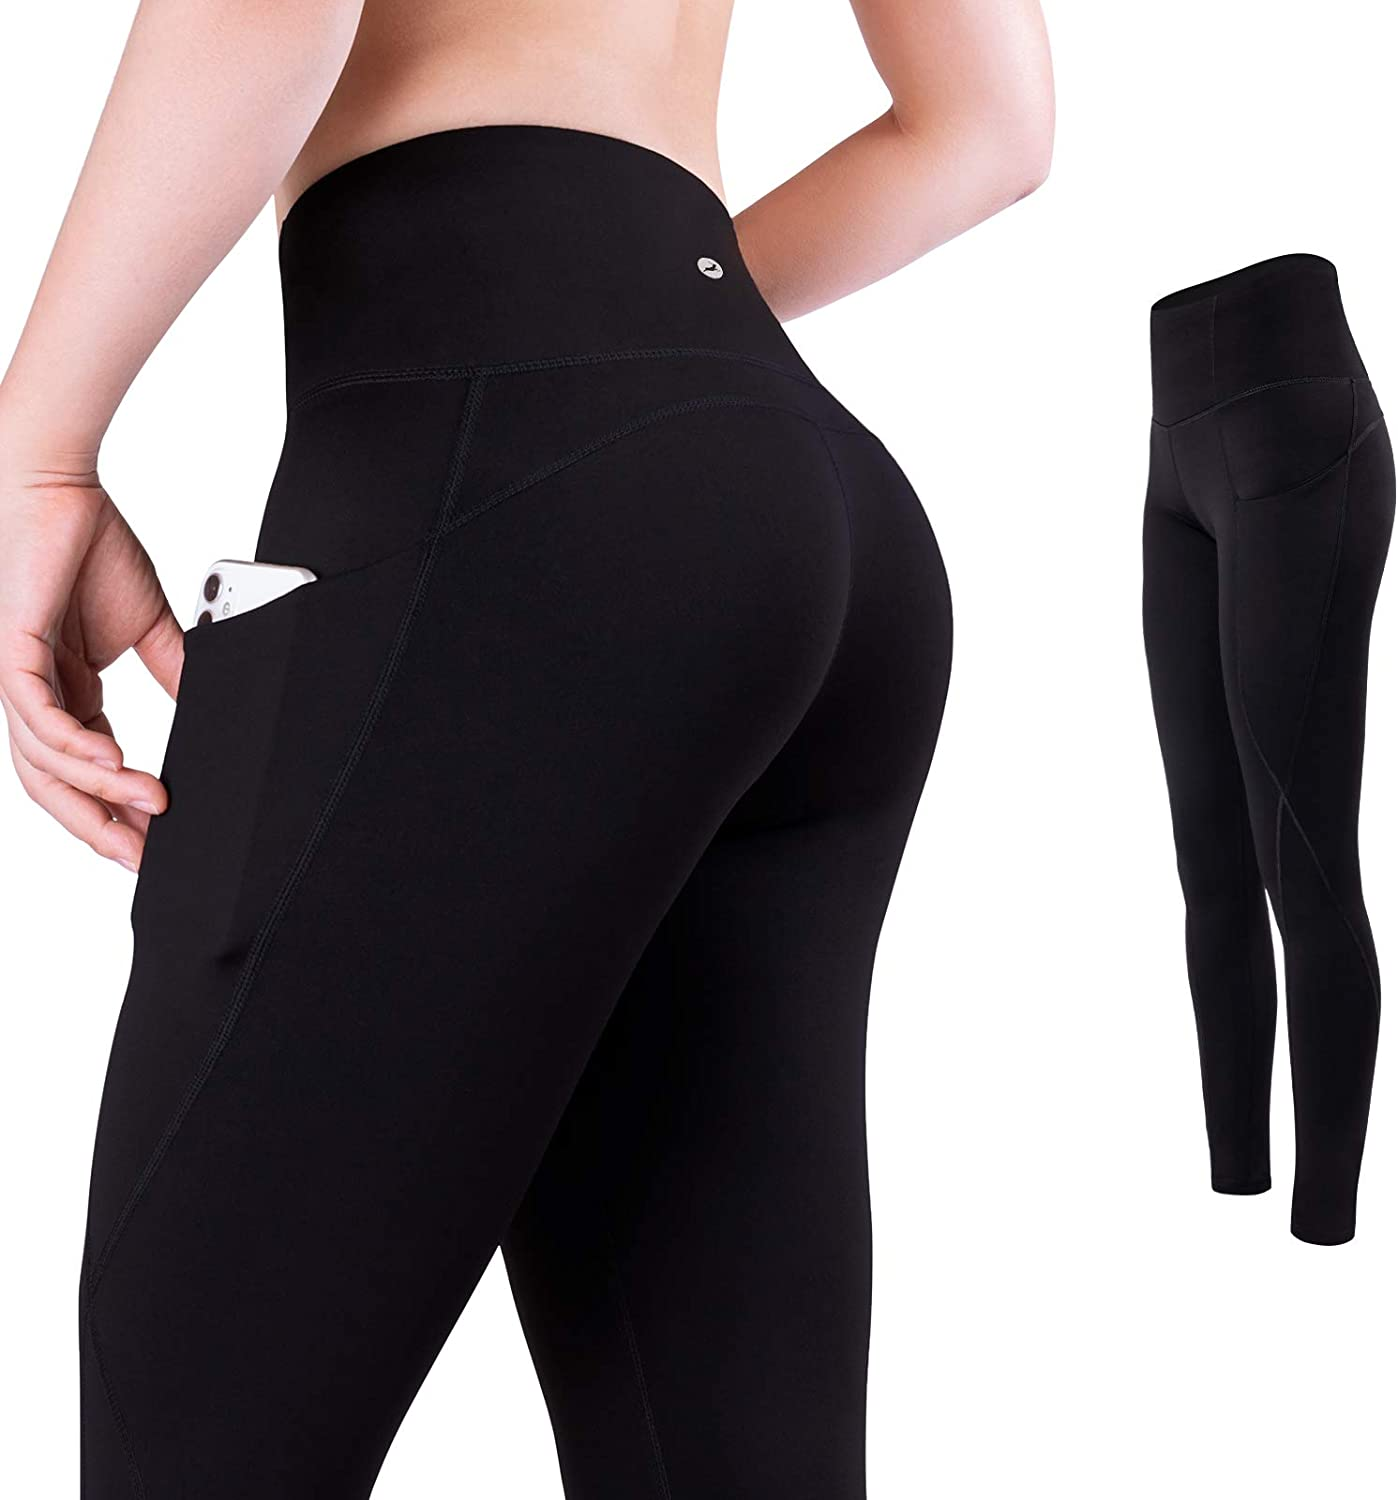 Trideer High Waisted Yoga Pants for Women, 7/8 Length Womens Workout Leggings with Pockets, Buttery Soft and Tummy Control: Clothing